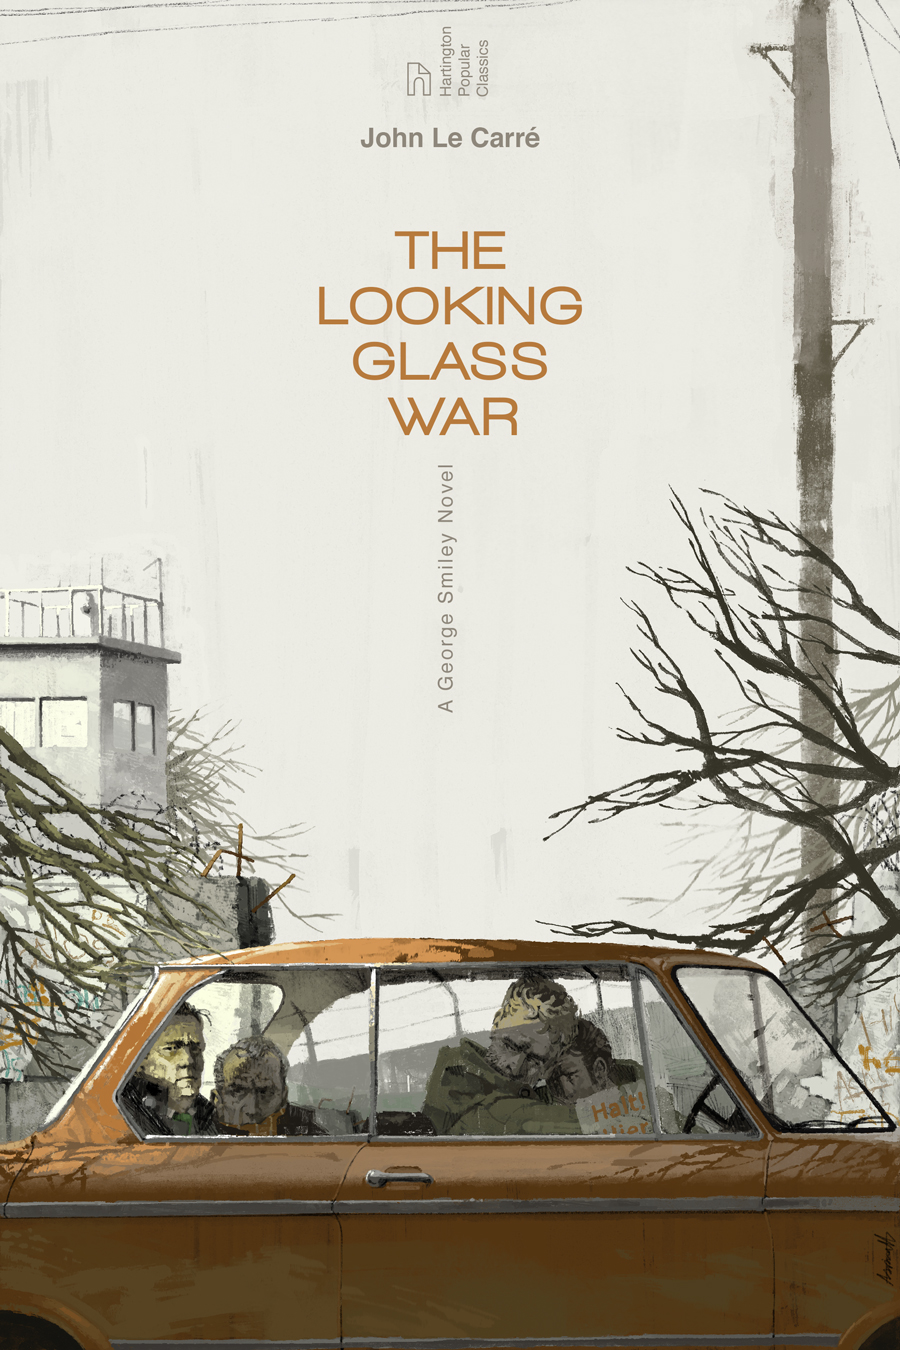 The Looking Glass War by John Le Carré book cover by Marc Aspinall